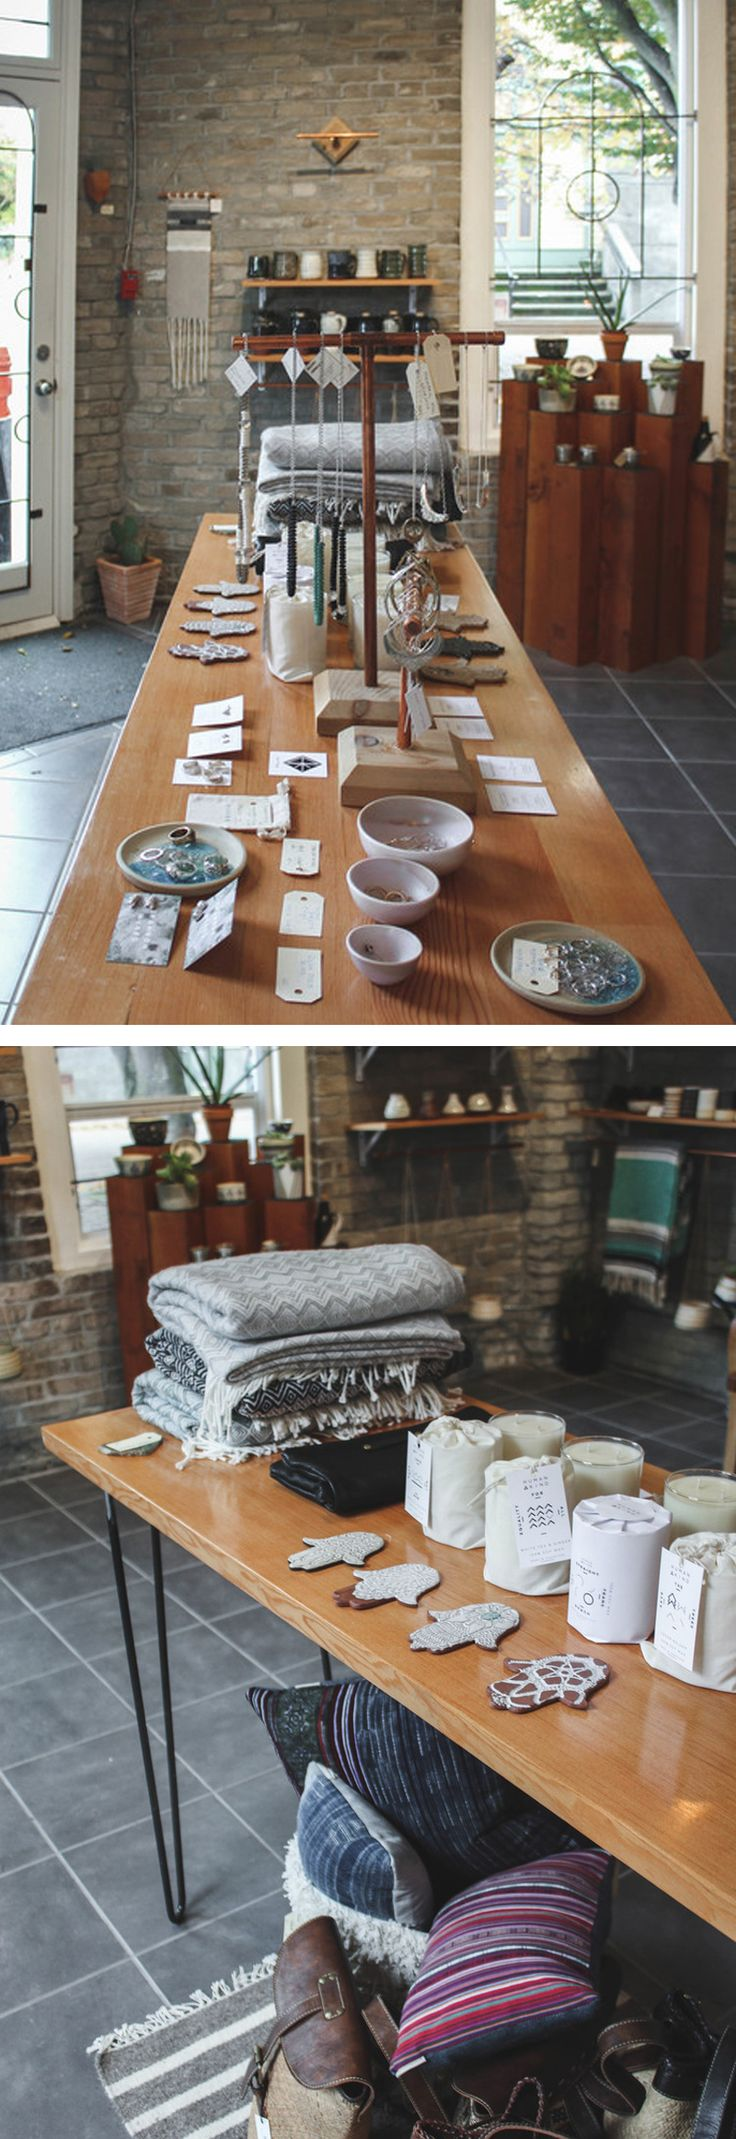 Picot Collective is a cozy brick and mortar shop in Victoria, BC full of a curated collection of handcrafted, artisan goods, gifts, and treasures